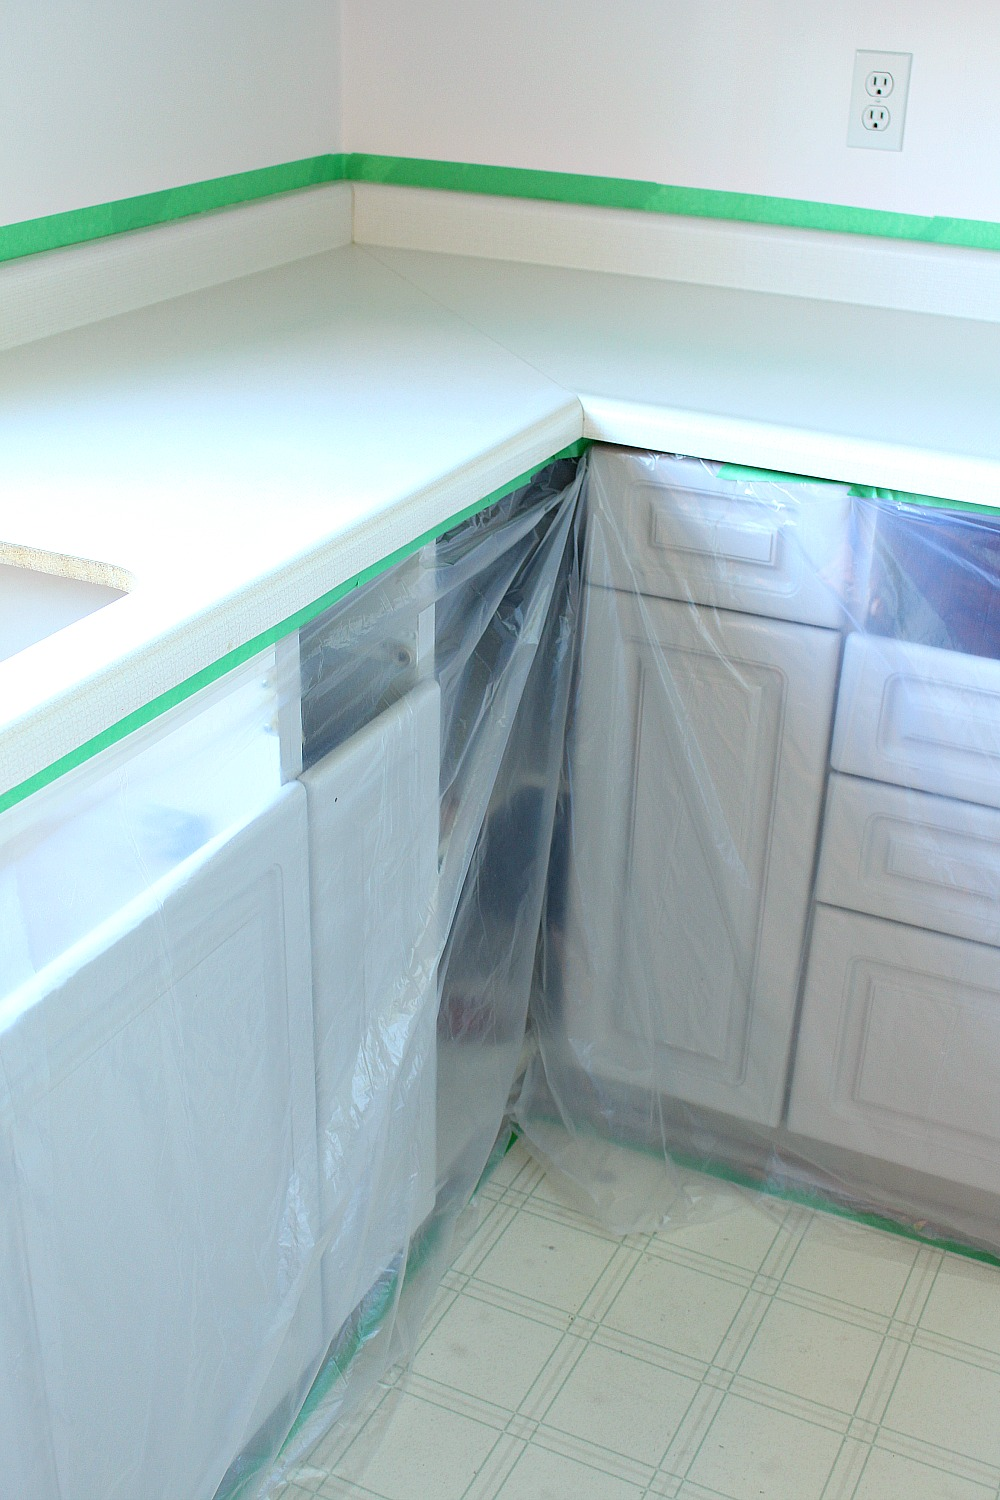 How to repair and refinish laminate counters | Dans le Lakehouse